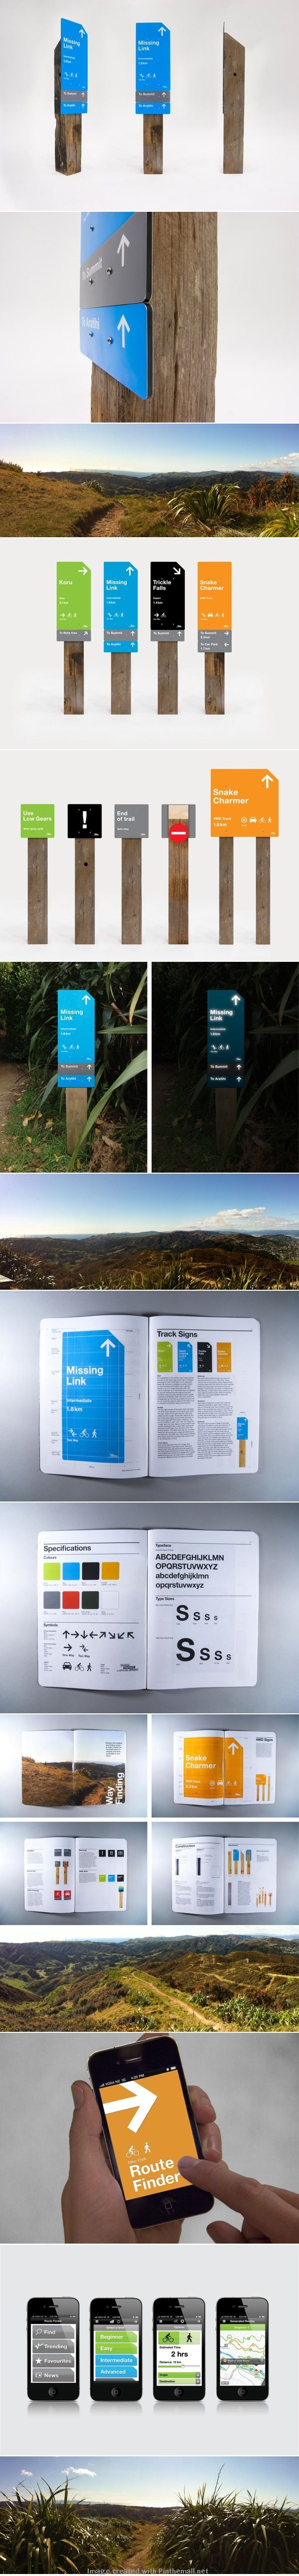 Makara Peak mountain bike trails wayfinding system, via Behance.: